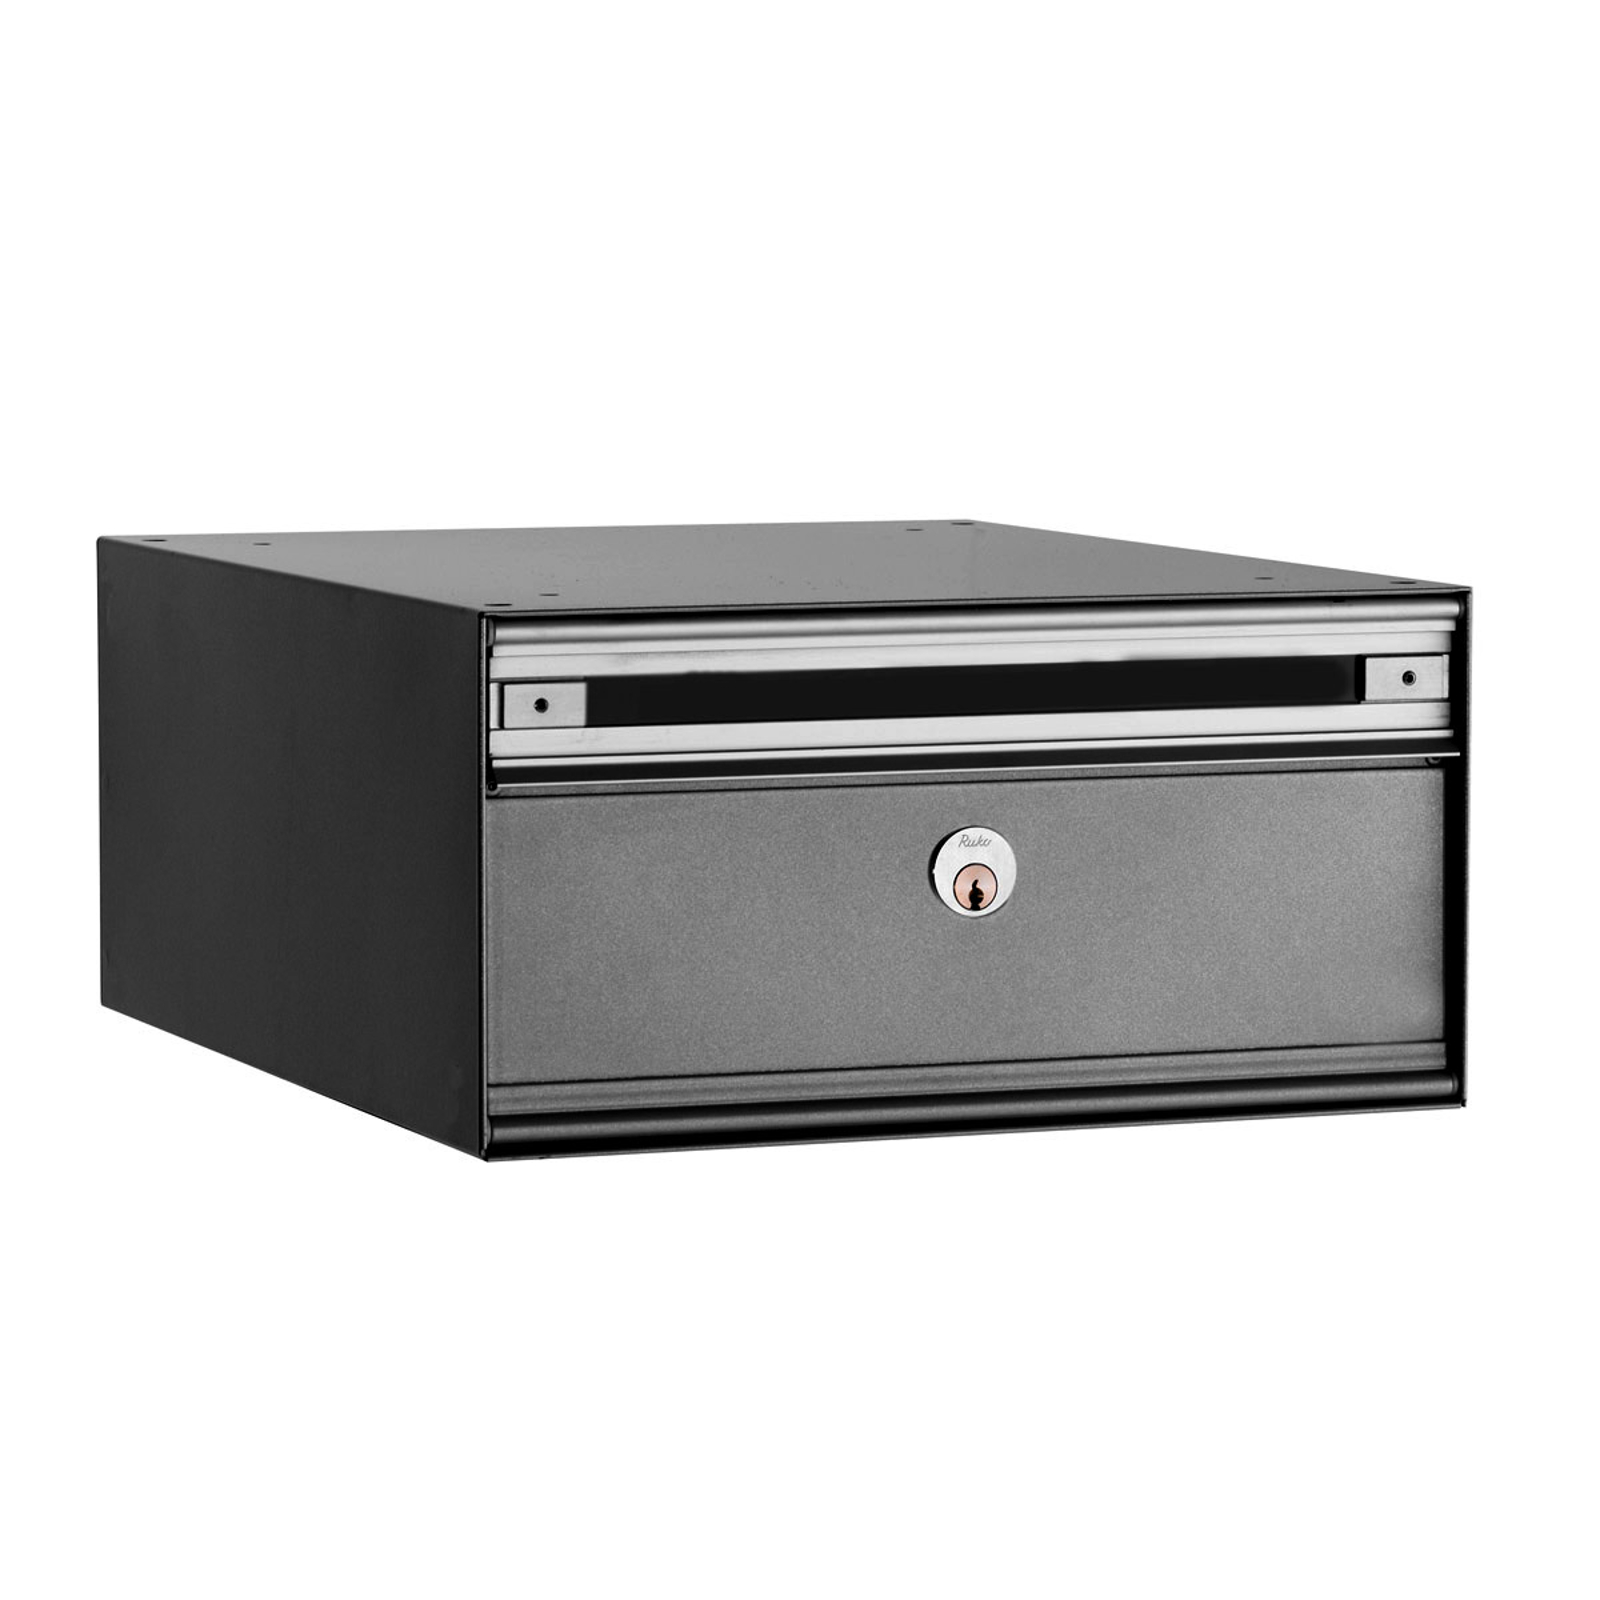 Expandable letterbox PC1, steel front_1045061_1